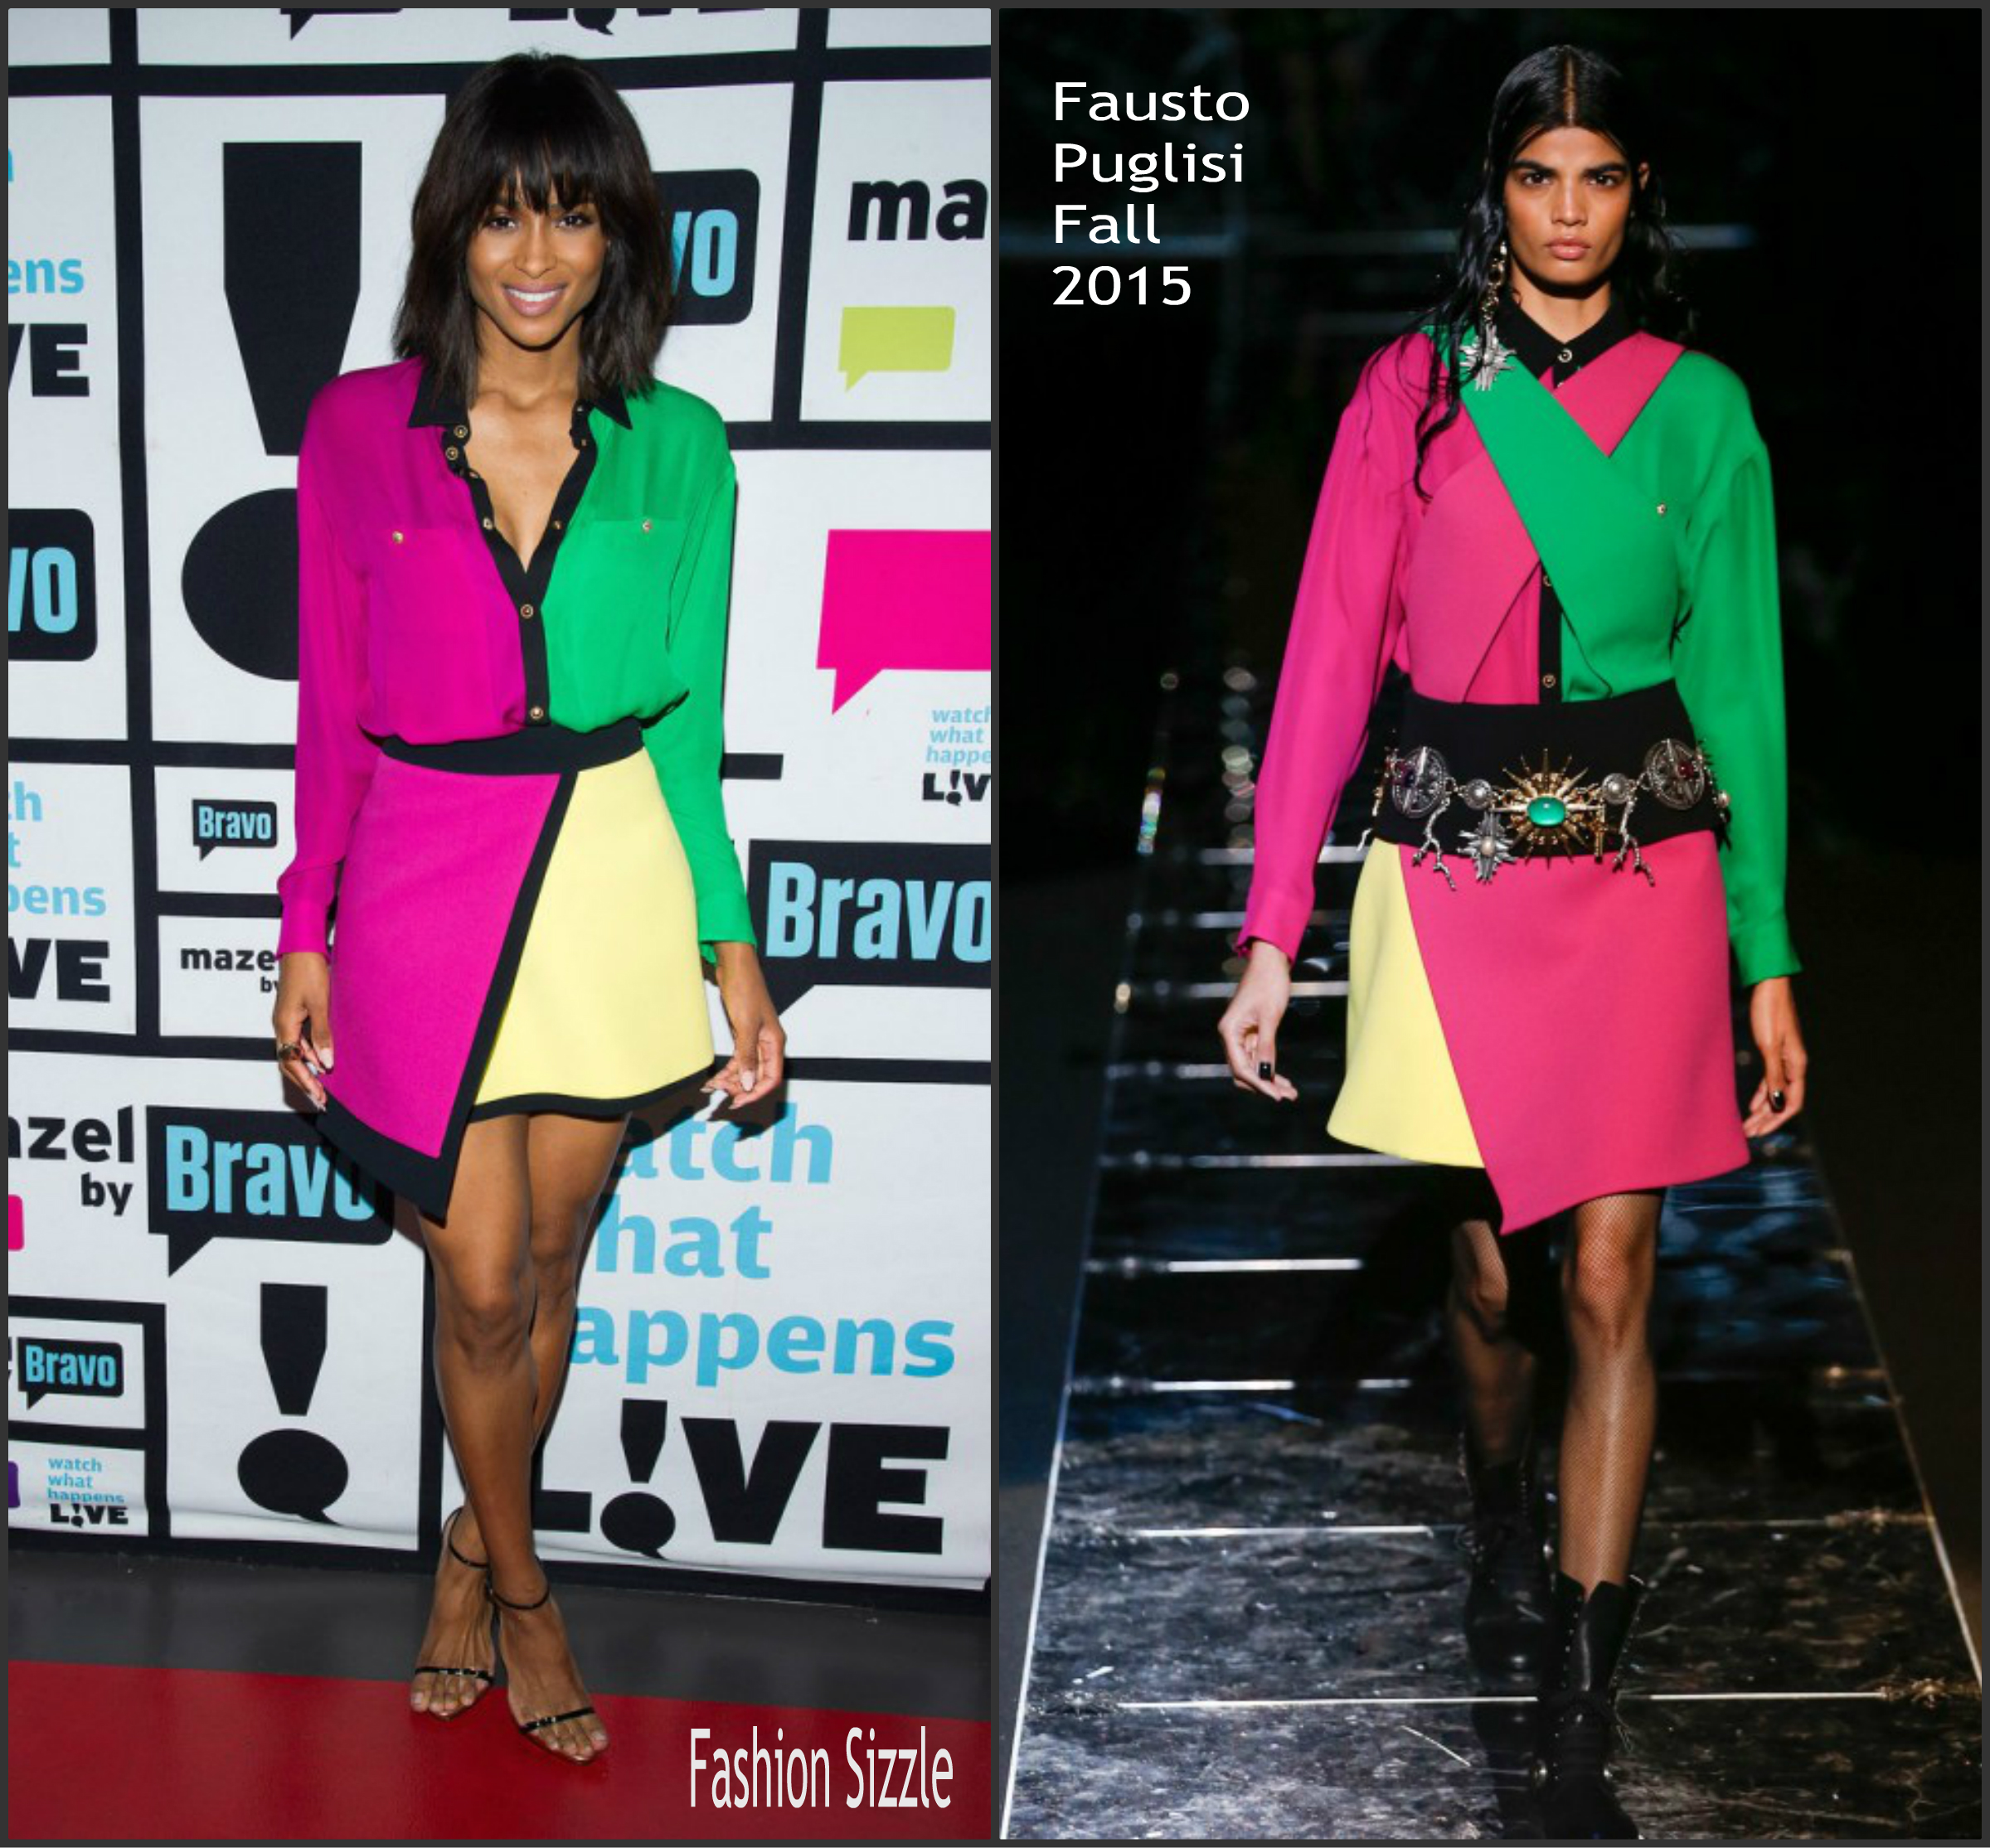 ciara-in-fausto-puglisi-watch-what-happens-live